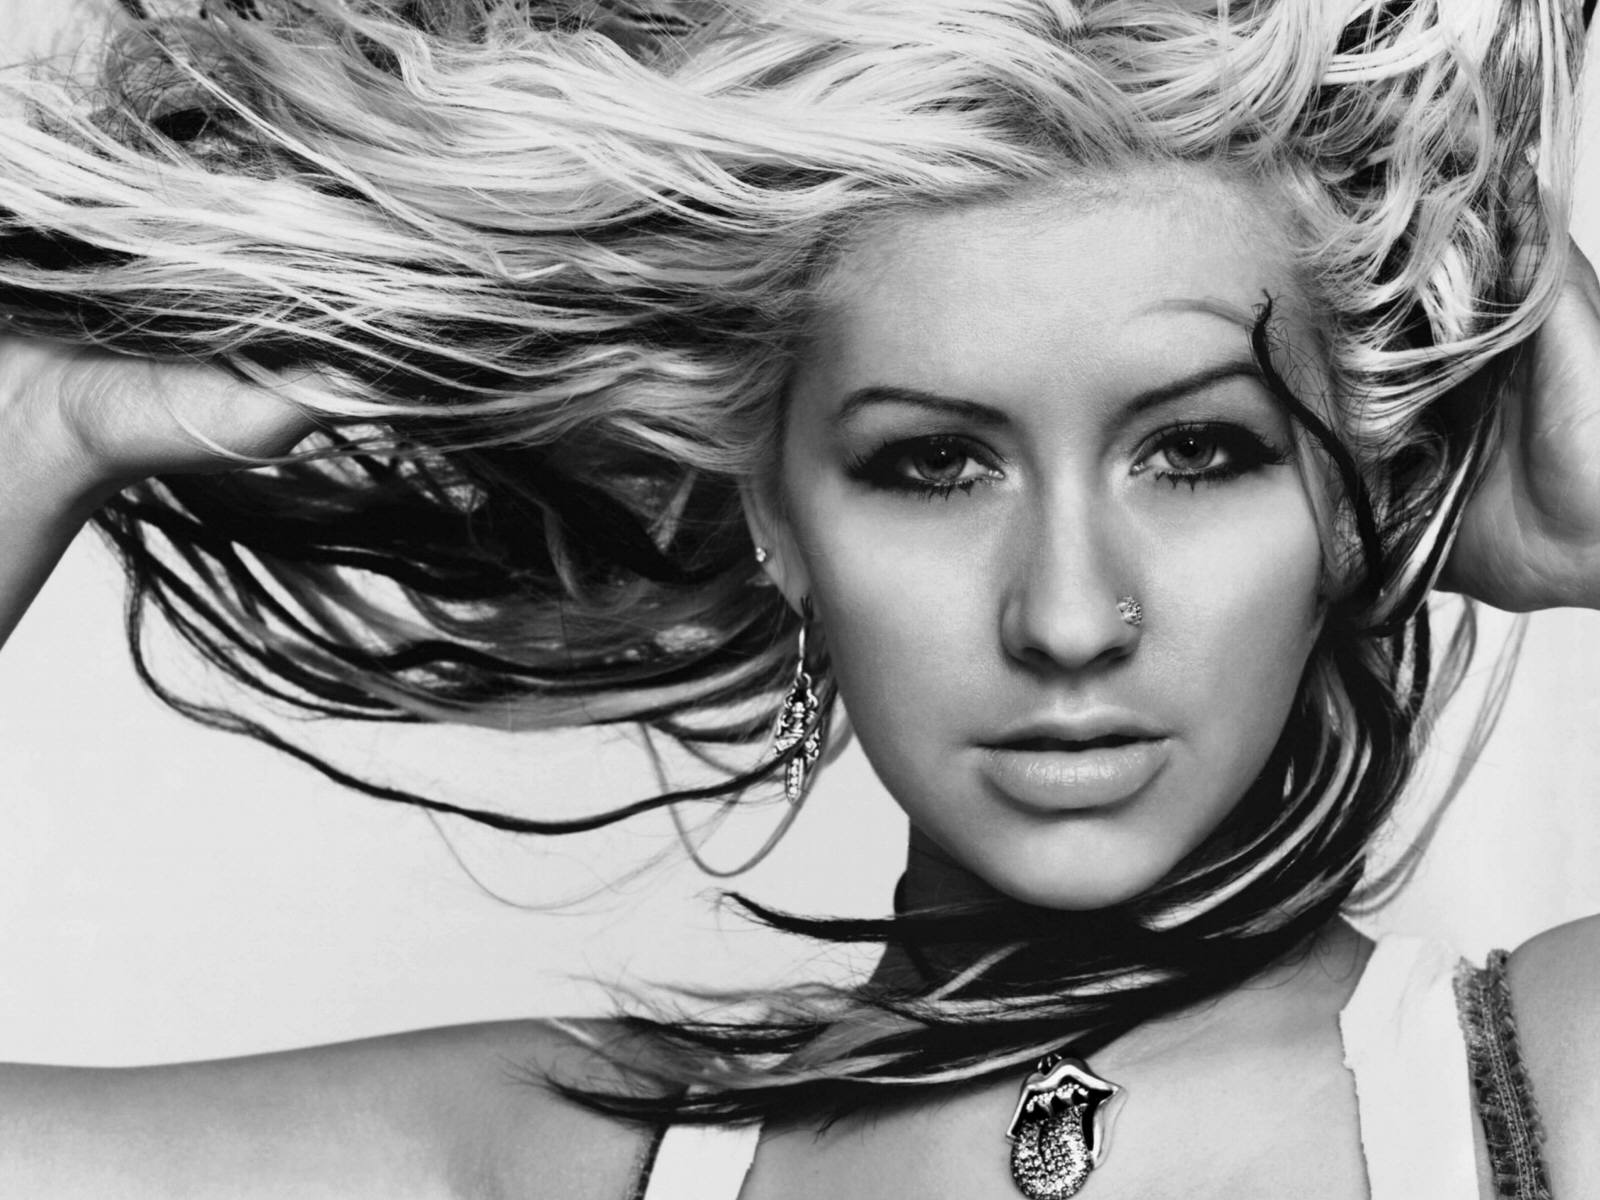 monochrome christina aguilera computer wallpaper 59838